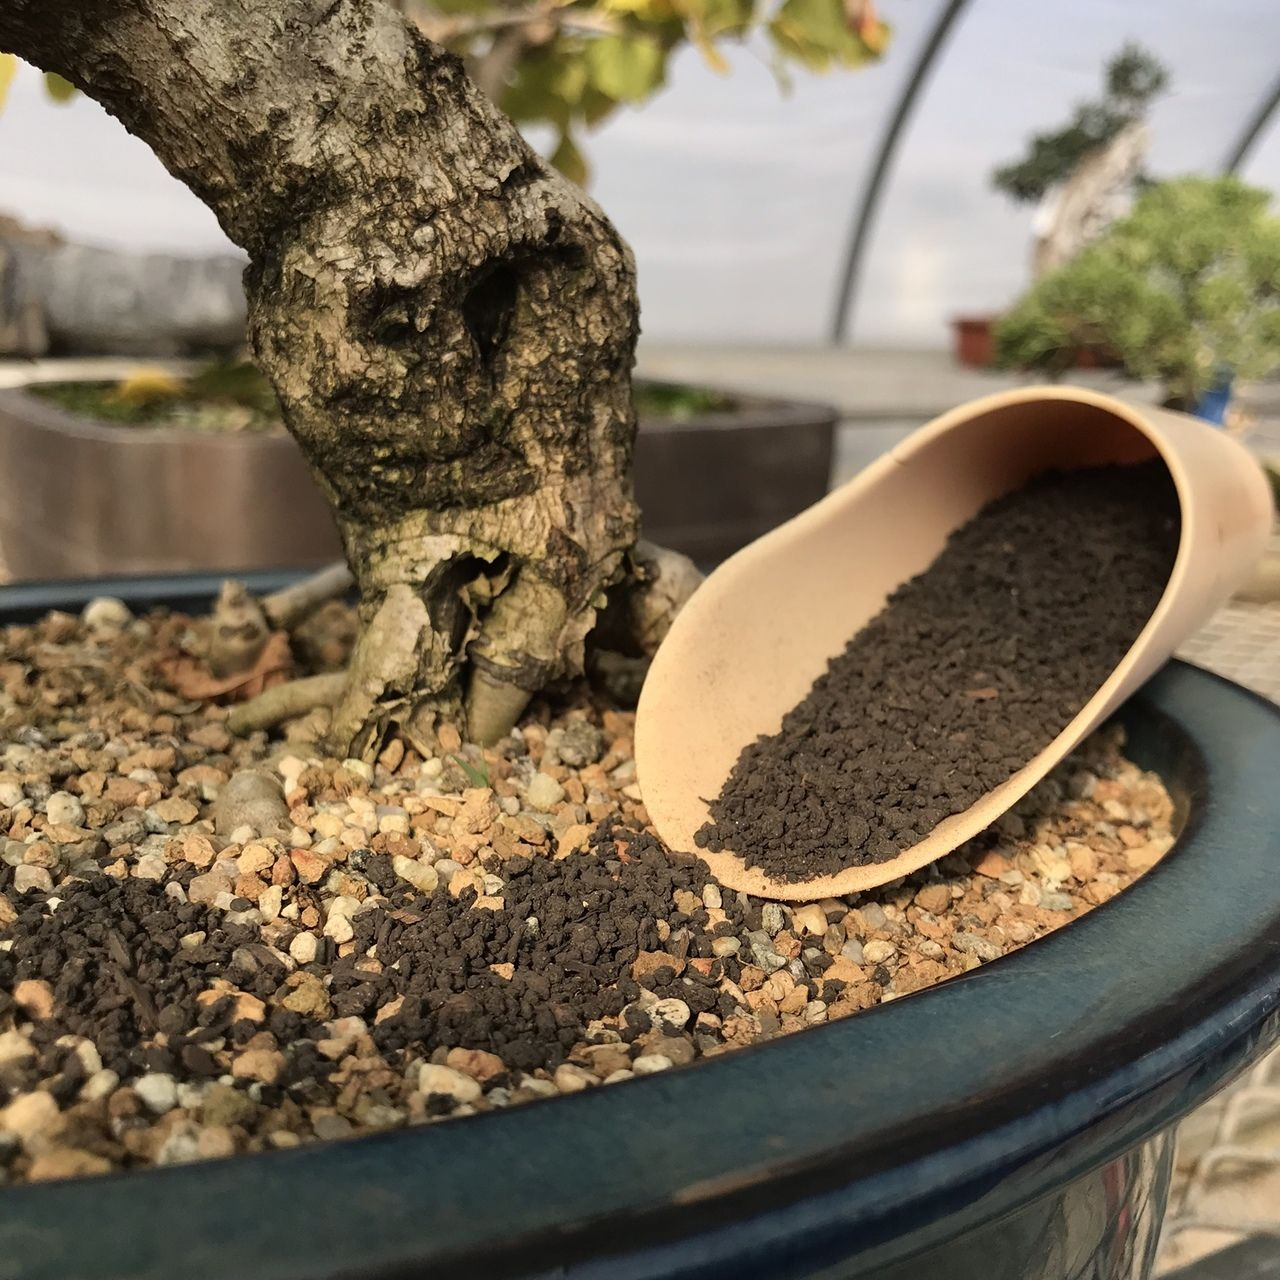 Fertilizing 101: How to Fertilize Your Bonsai - Bonsai Sanctum #bonsaiplants